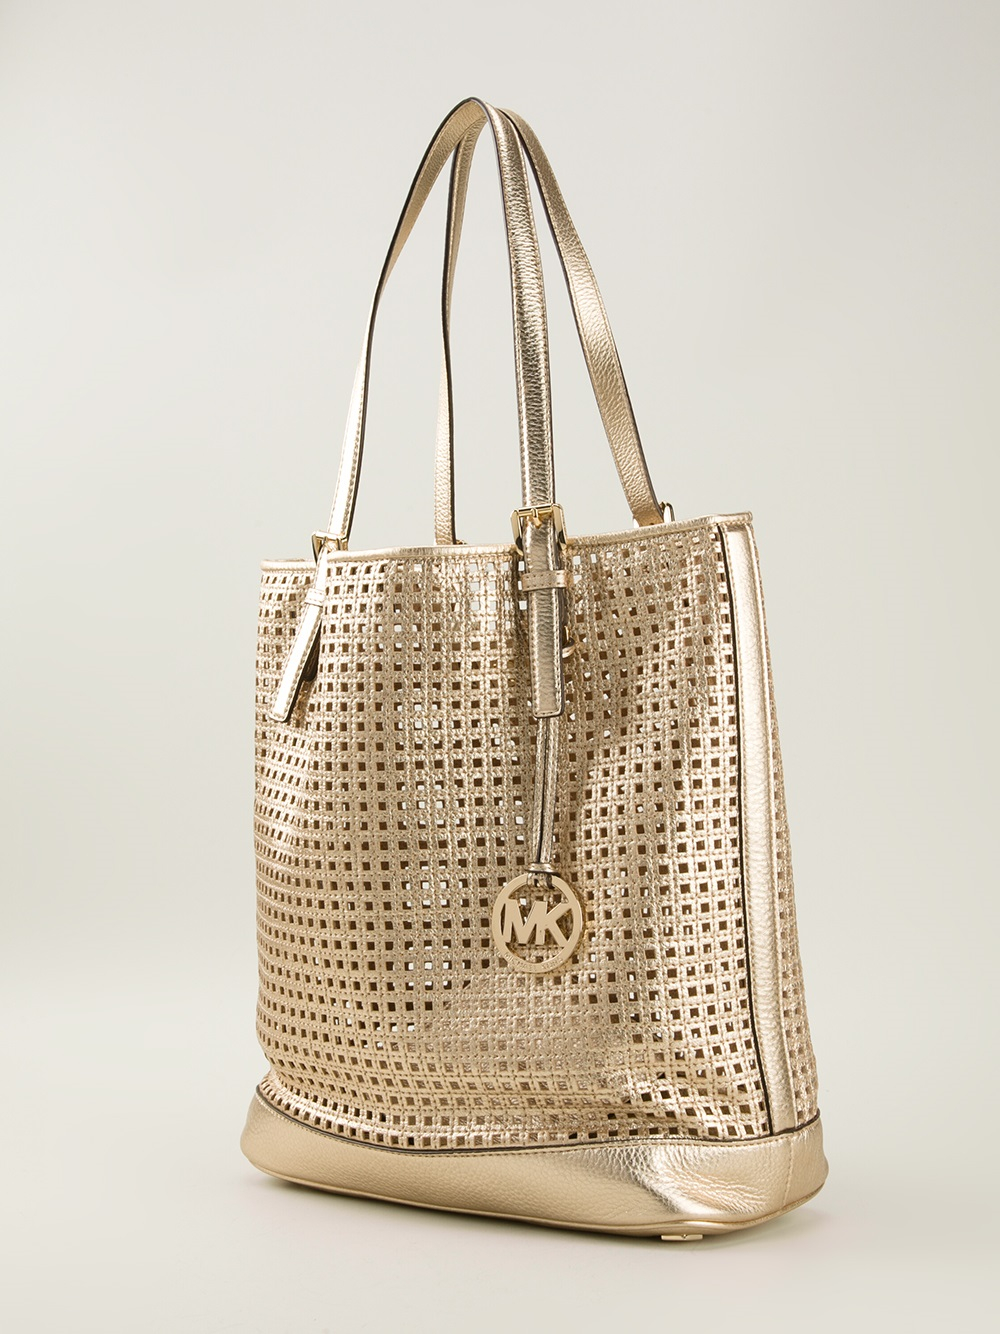 michael michael kors perforated shopper tote in metallic. Black Bedroom Furniture Sets. Home Design Ideas